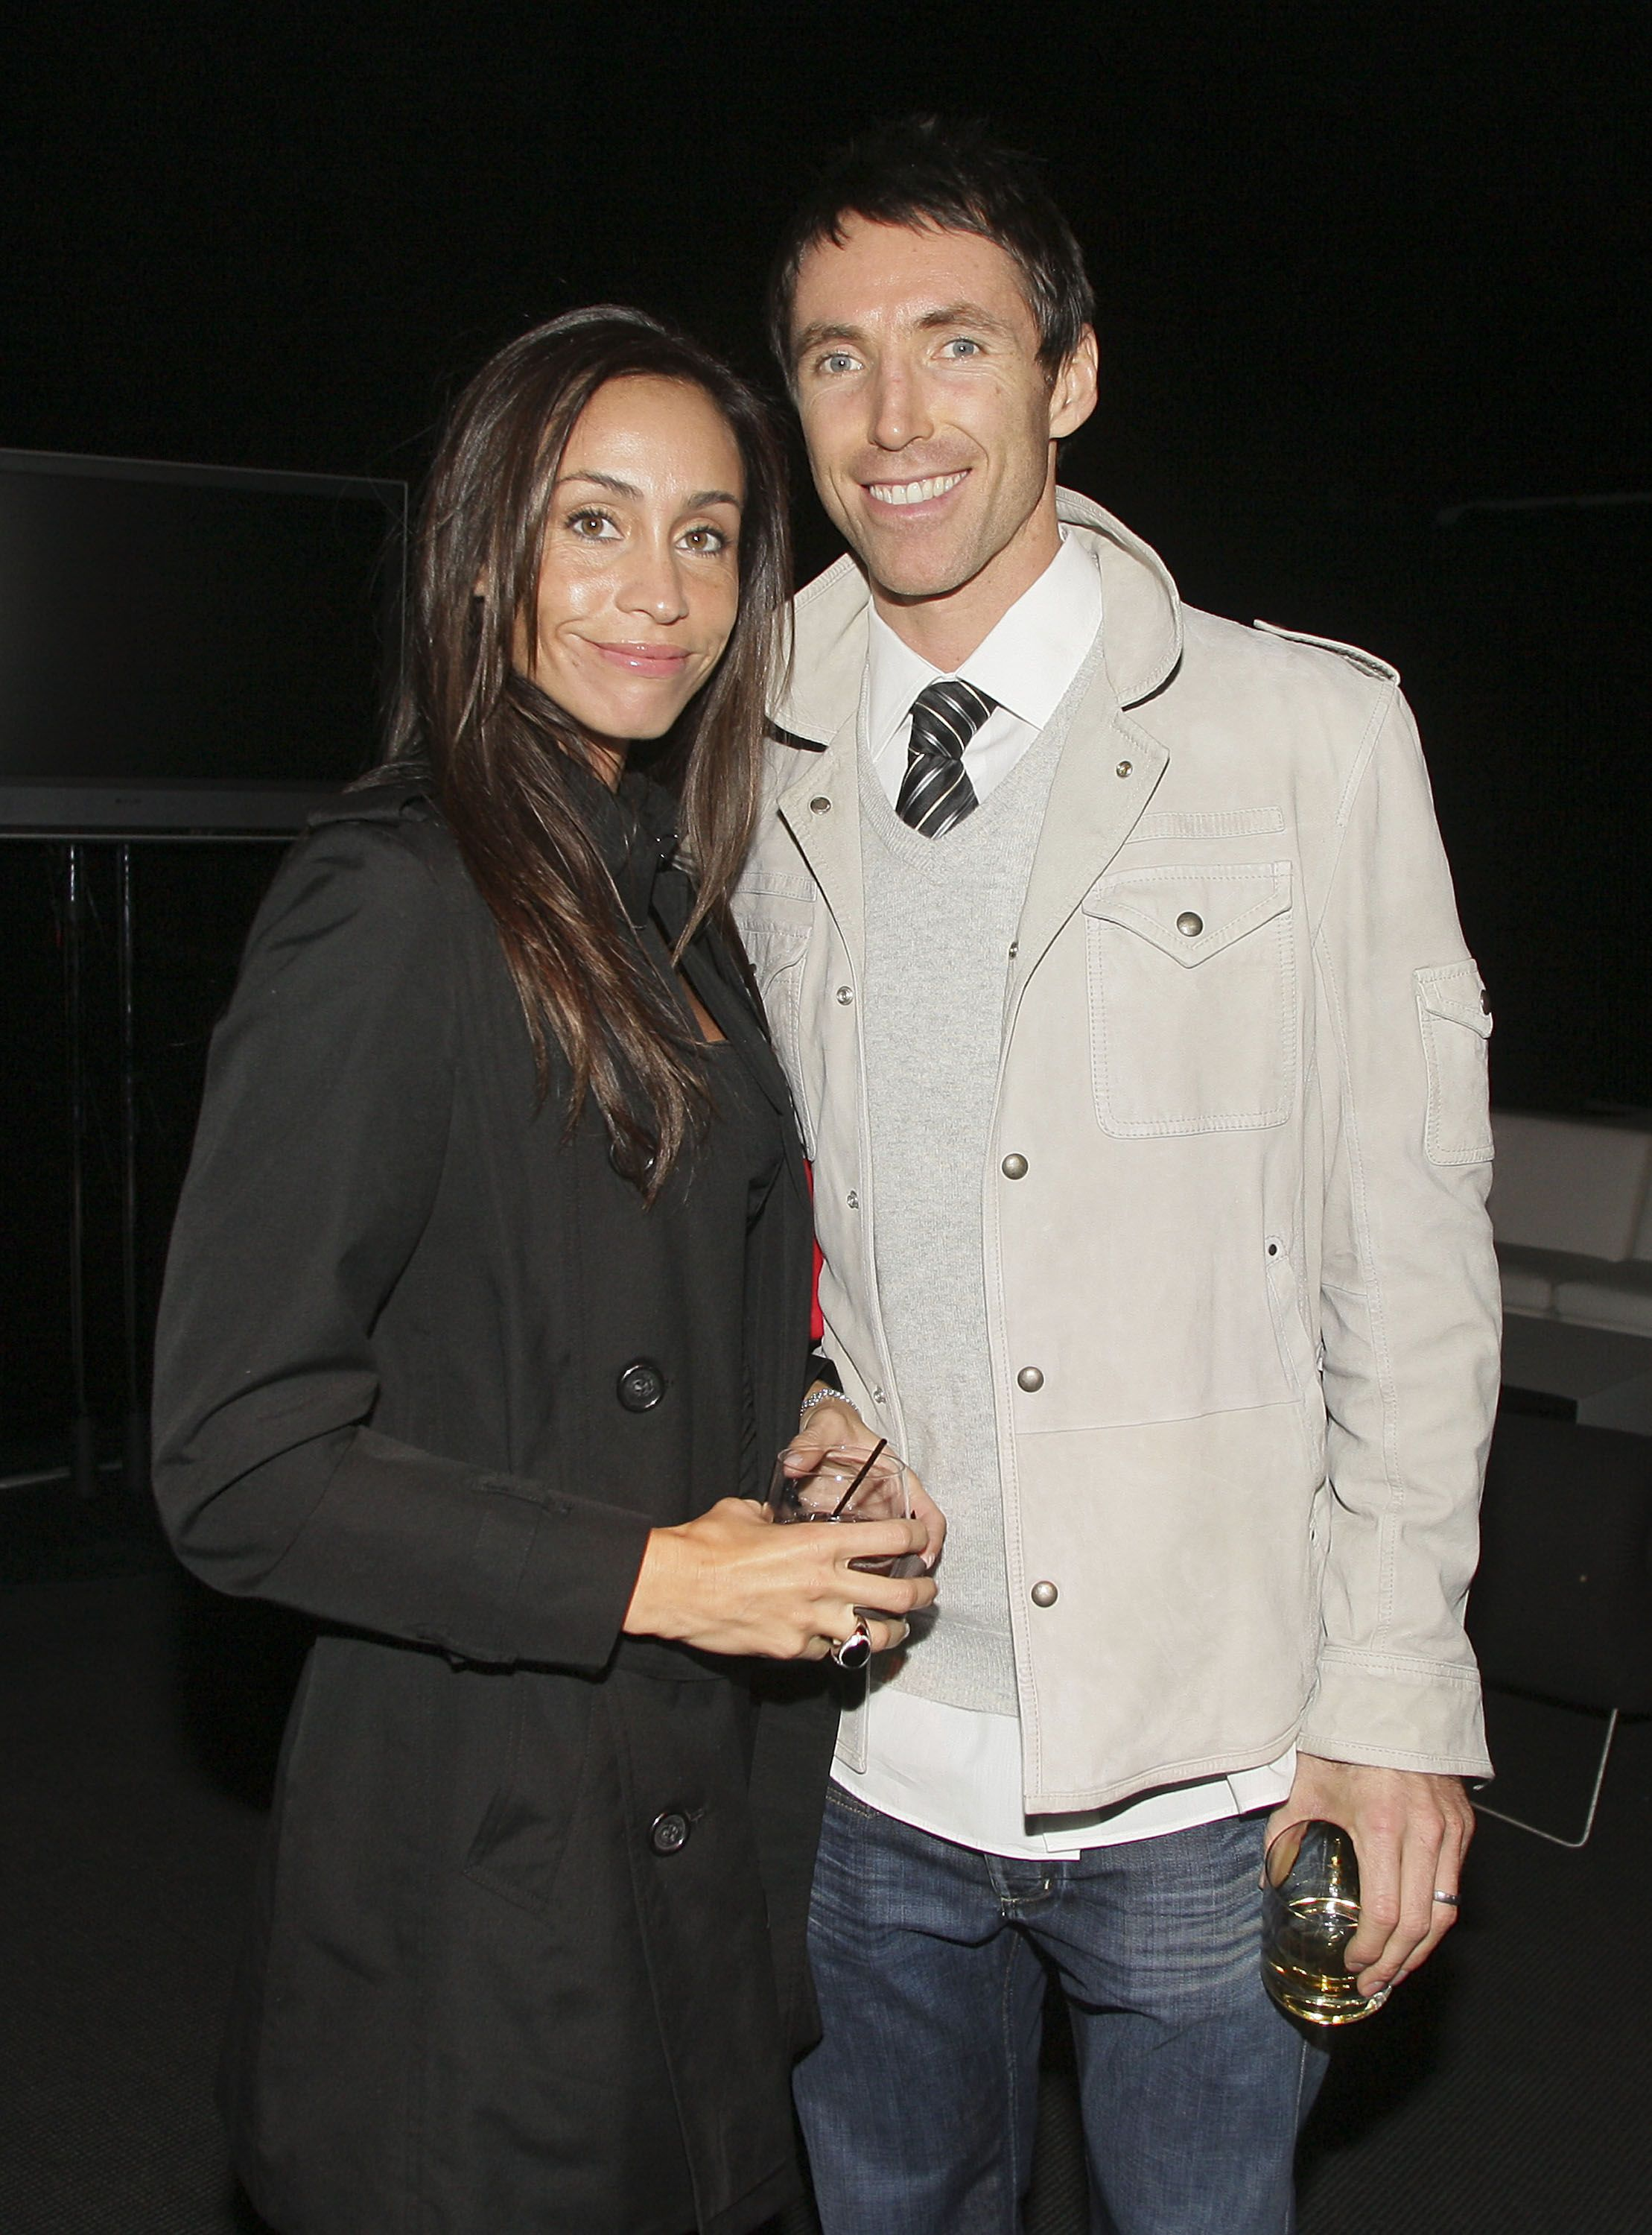 Steve Nash and Alejandra Amarilla at the Ronnie Lott and Donovan McNabb Dinner in 2008 in Phoenix, Arizona | Source: Getty Images